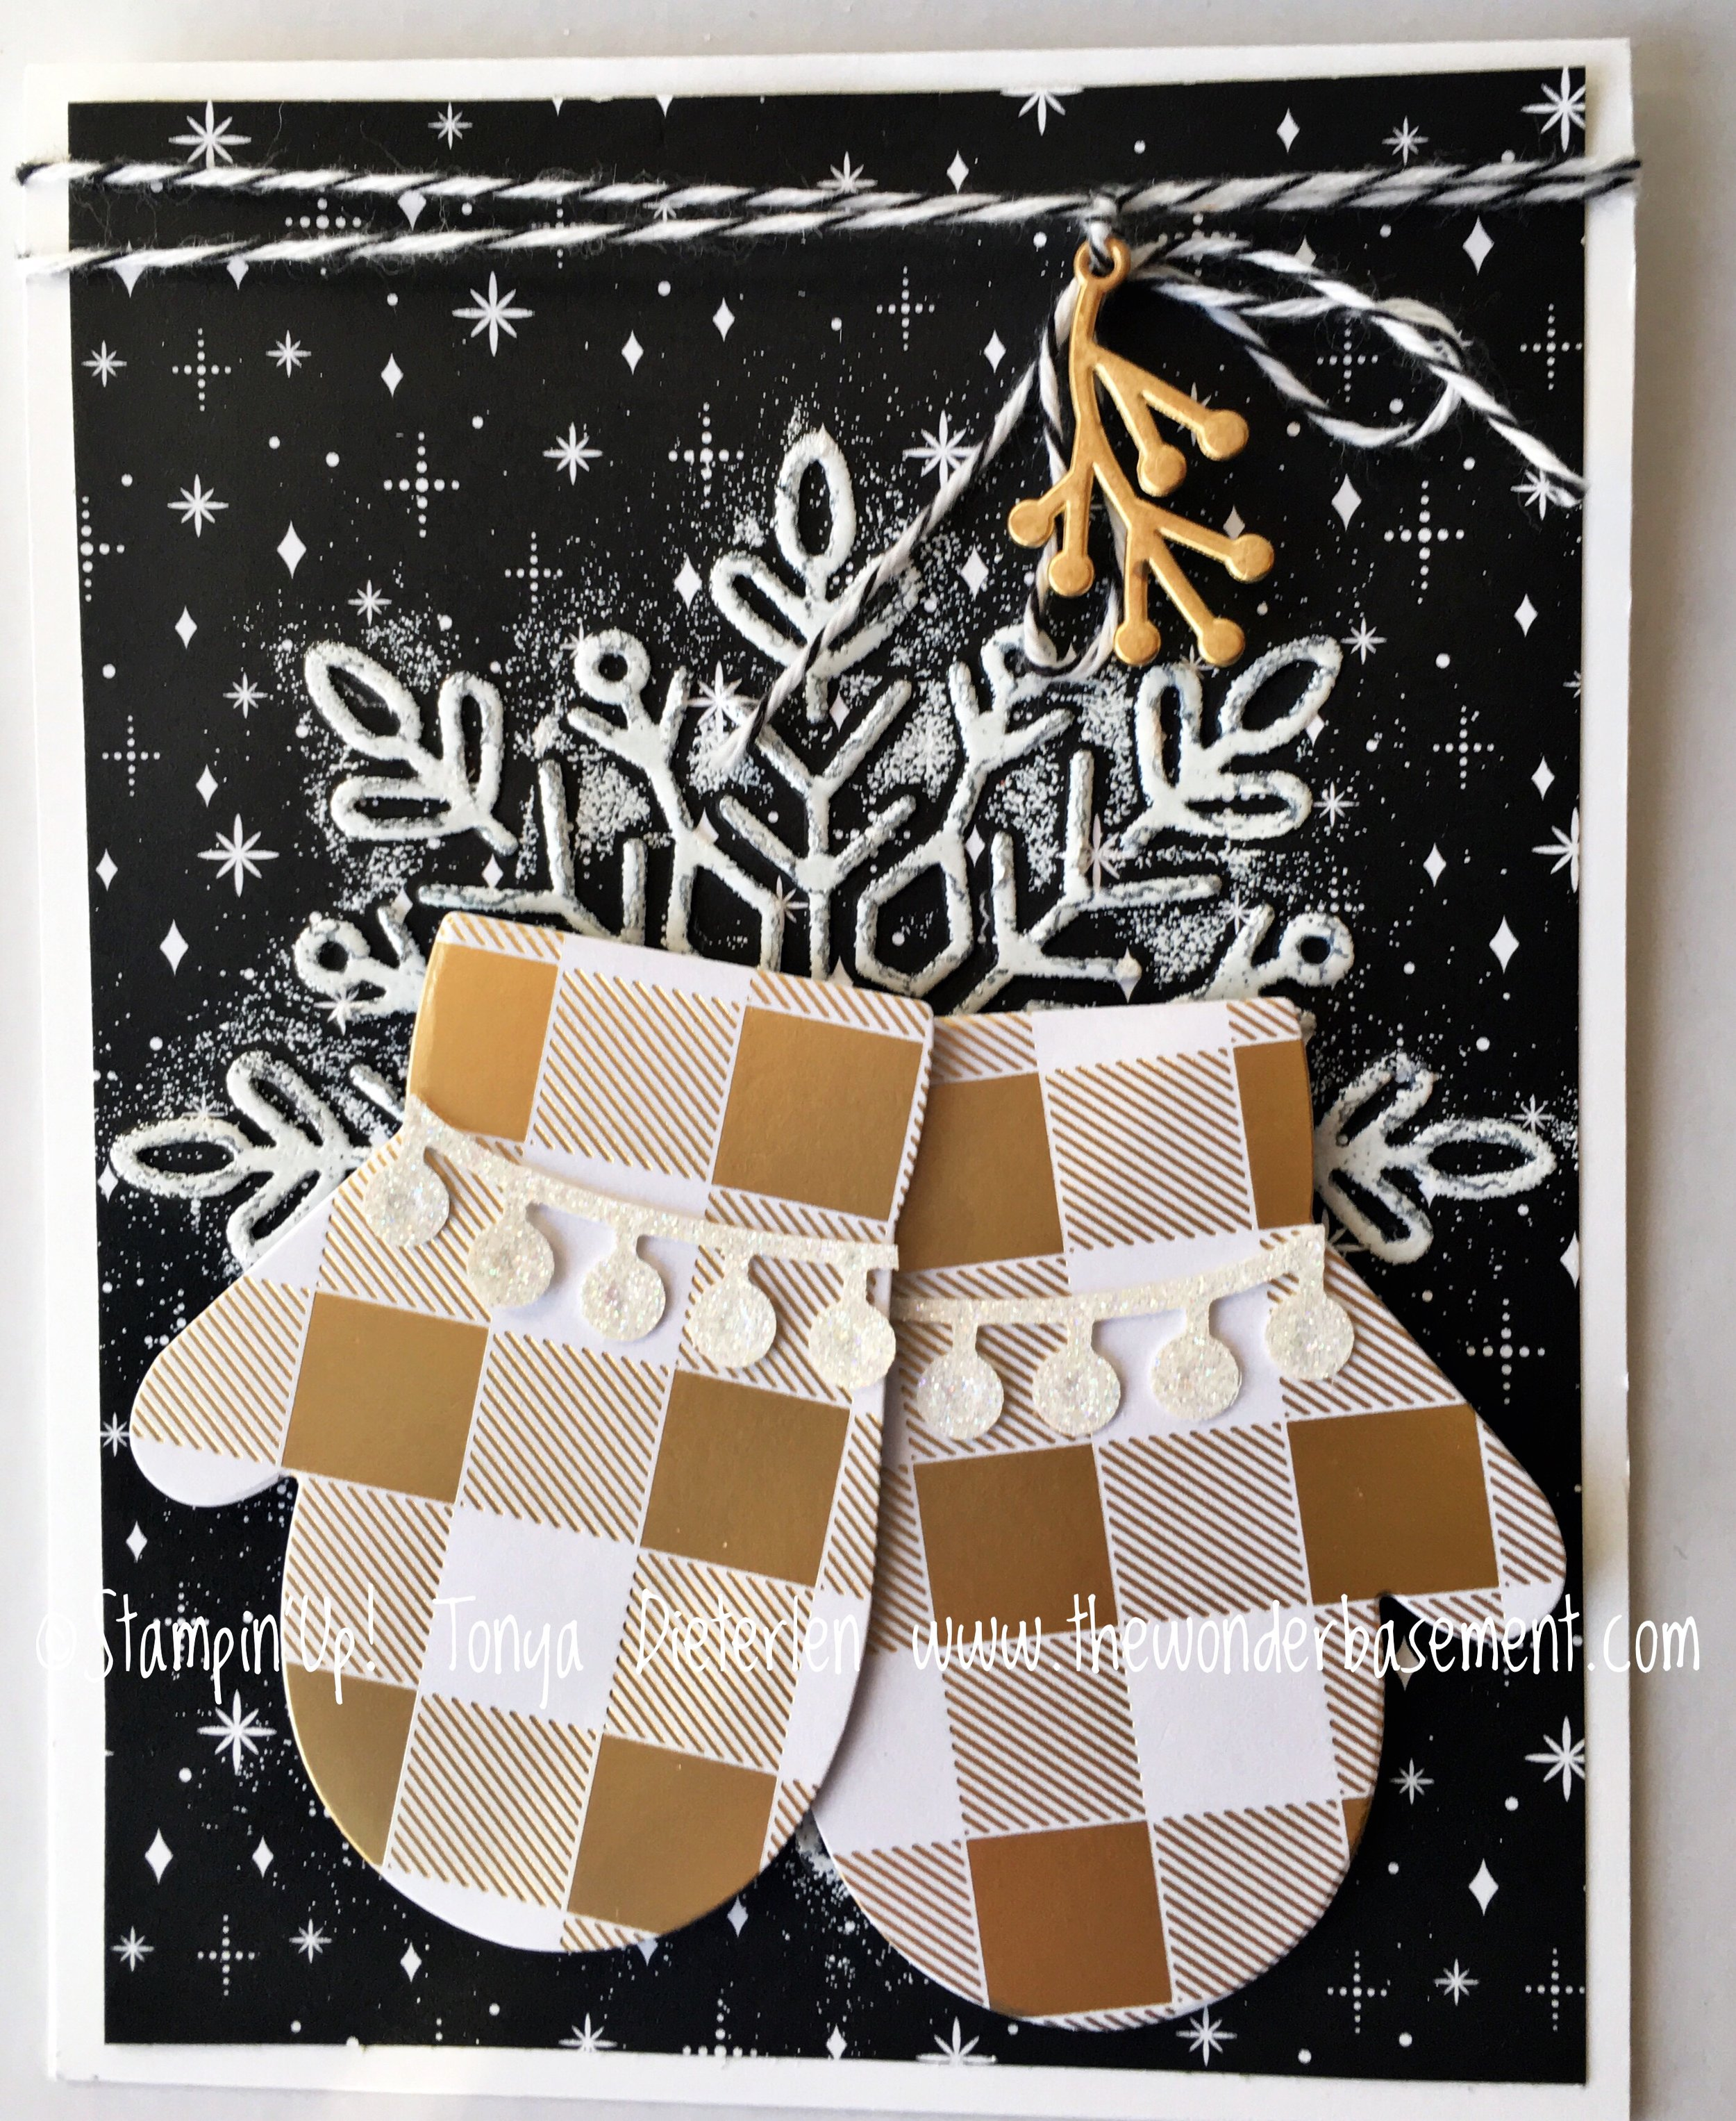 The snowflake on the black printed paper was made by using the snowflake embossing folder & then inking just the raised embossed area with White Craft ink. I see stars with this design!